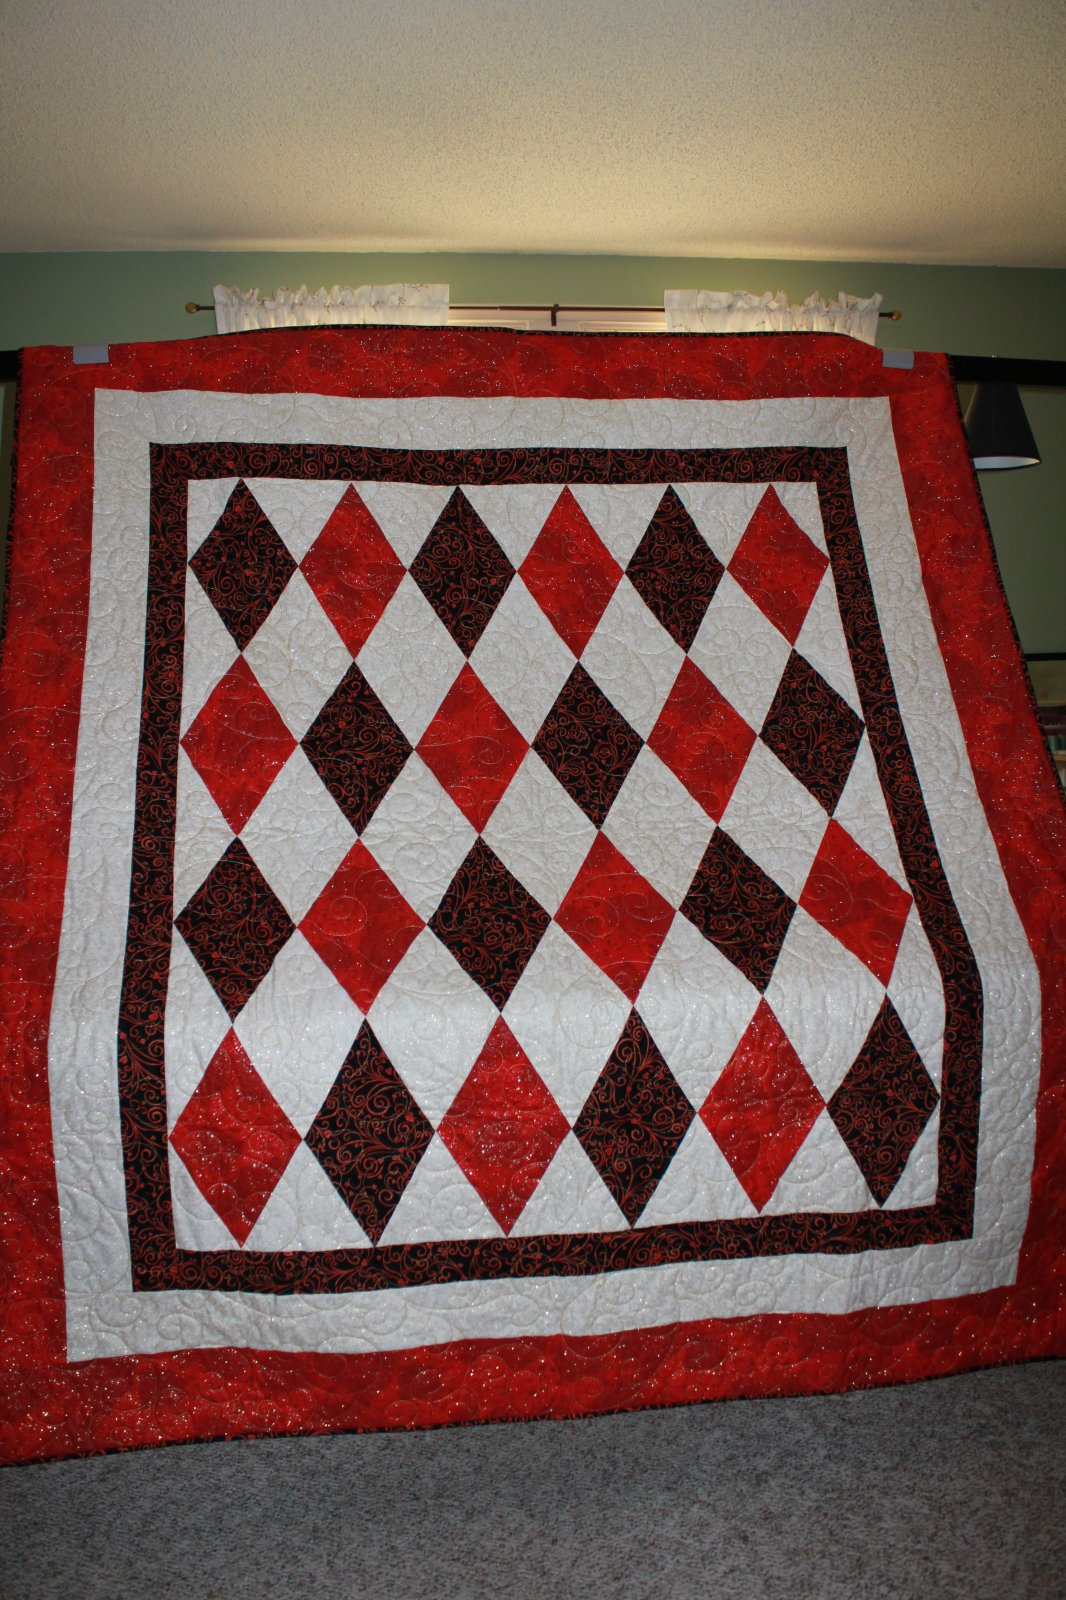 SALE Queen of Hearts Custom Designed Diamonds in Red, White, and Black Quilt